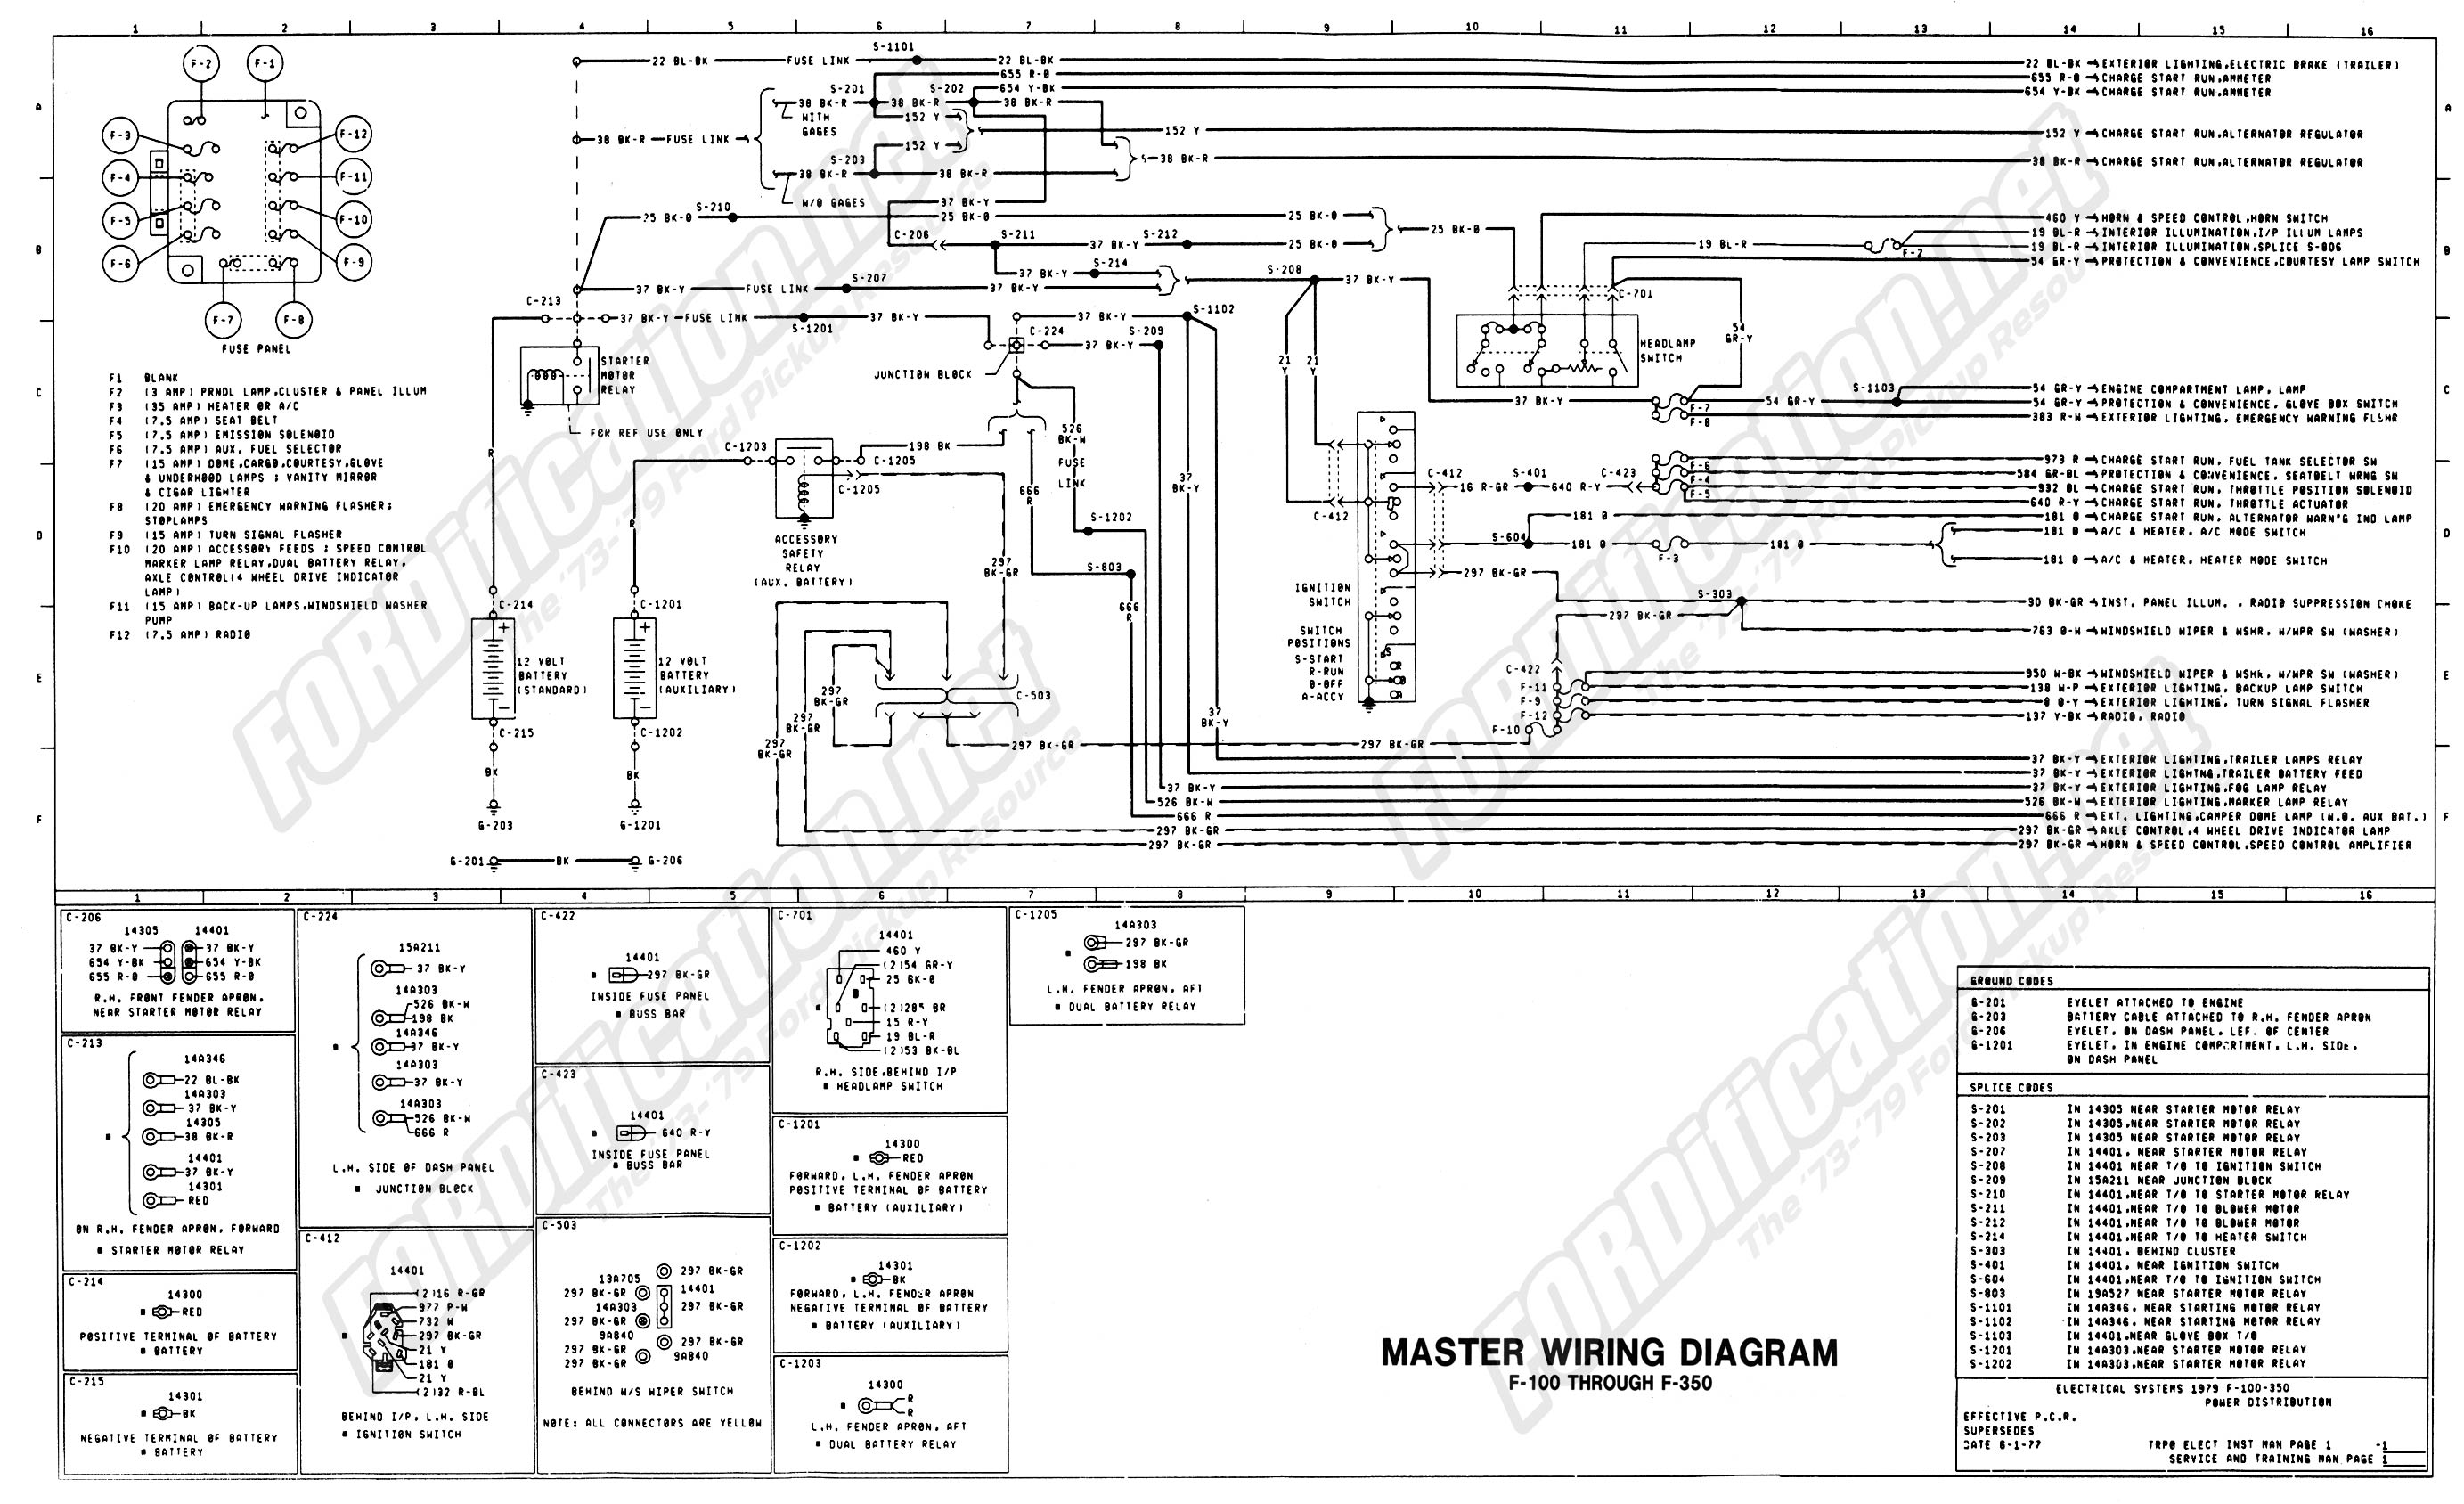 wiring_79master_1of9 1973 1979 ford truck wiring diagrams & schematics fordification net truck lights wiring diagram at gsmportal.co